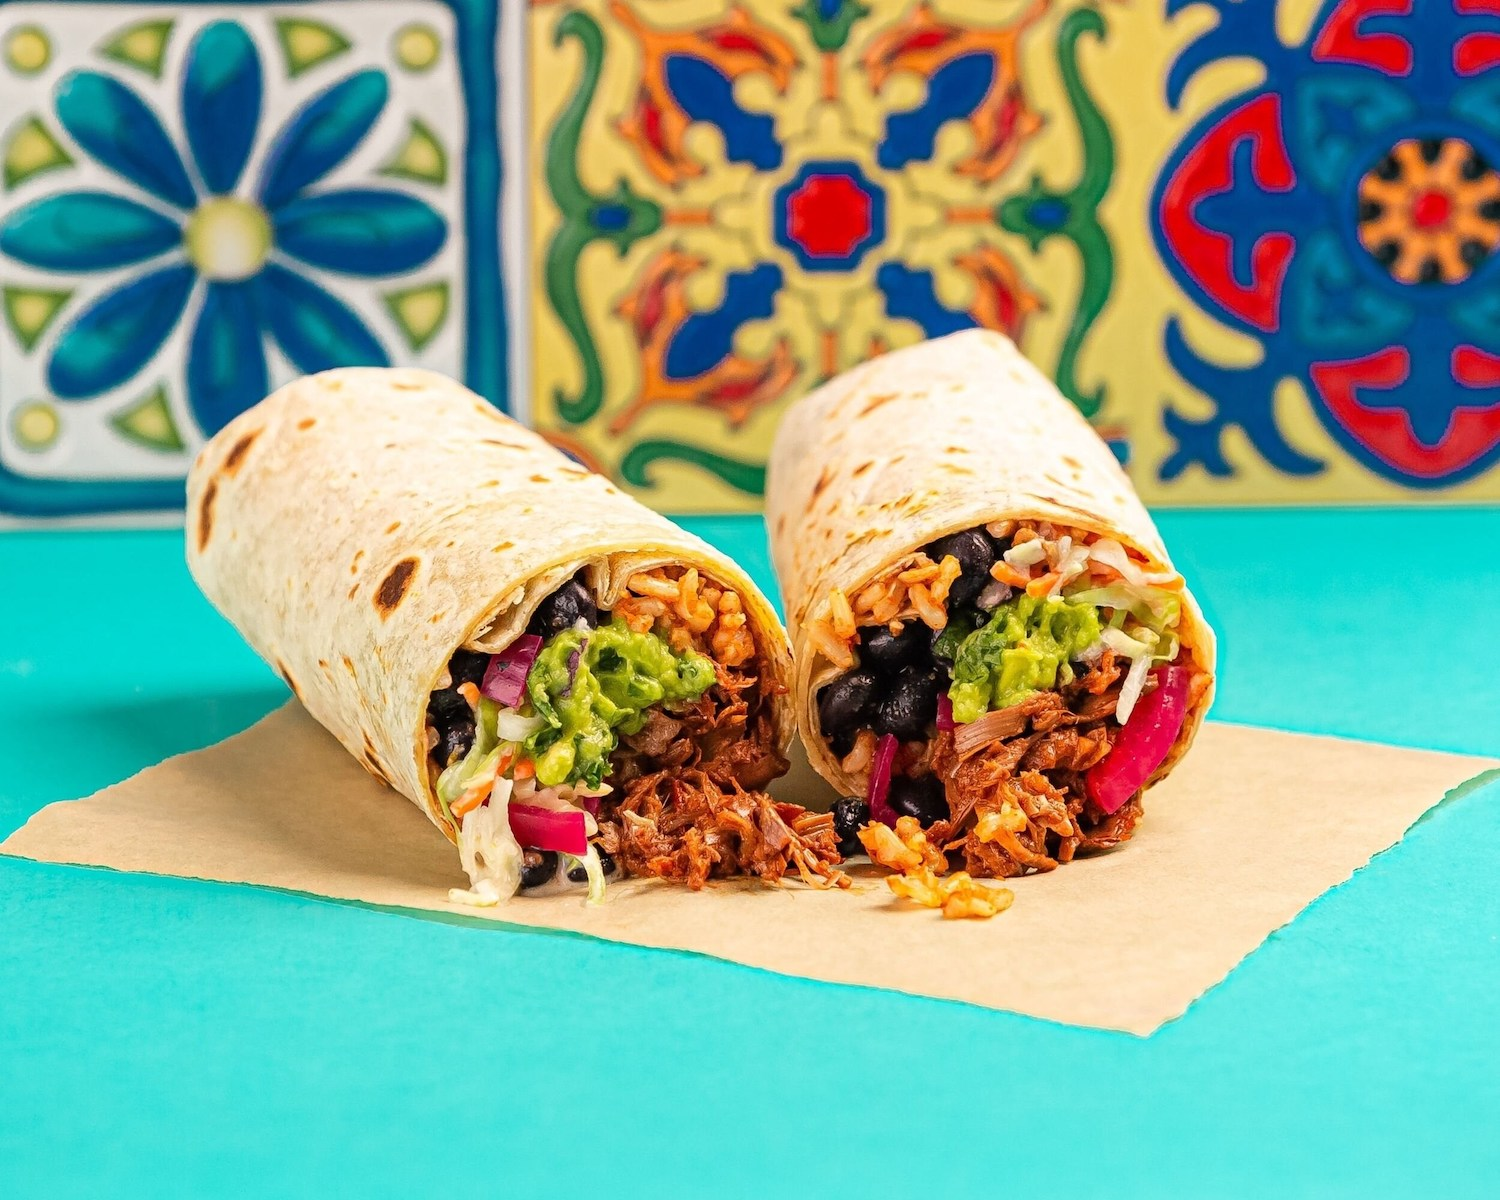 Veggie Grill delivery-only Mexican restaurant